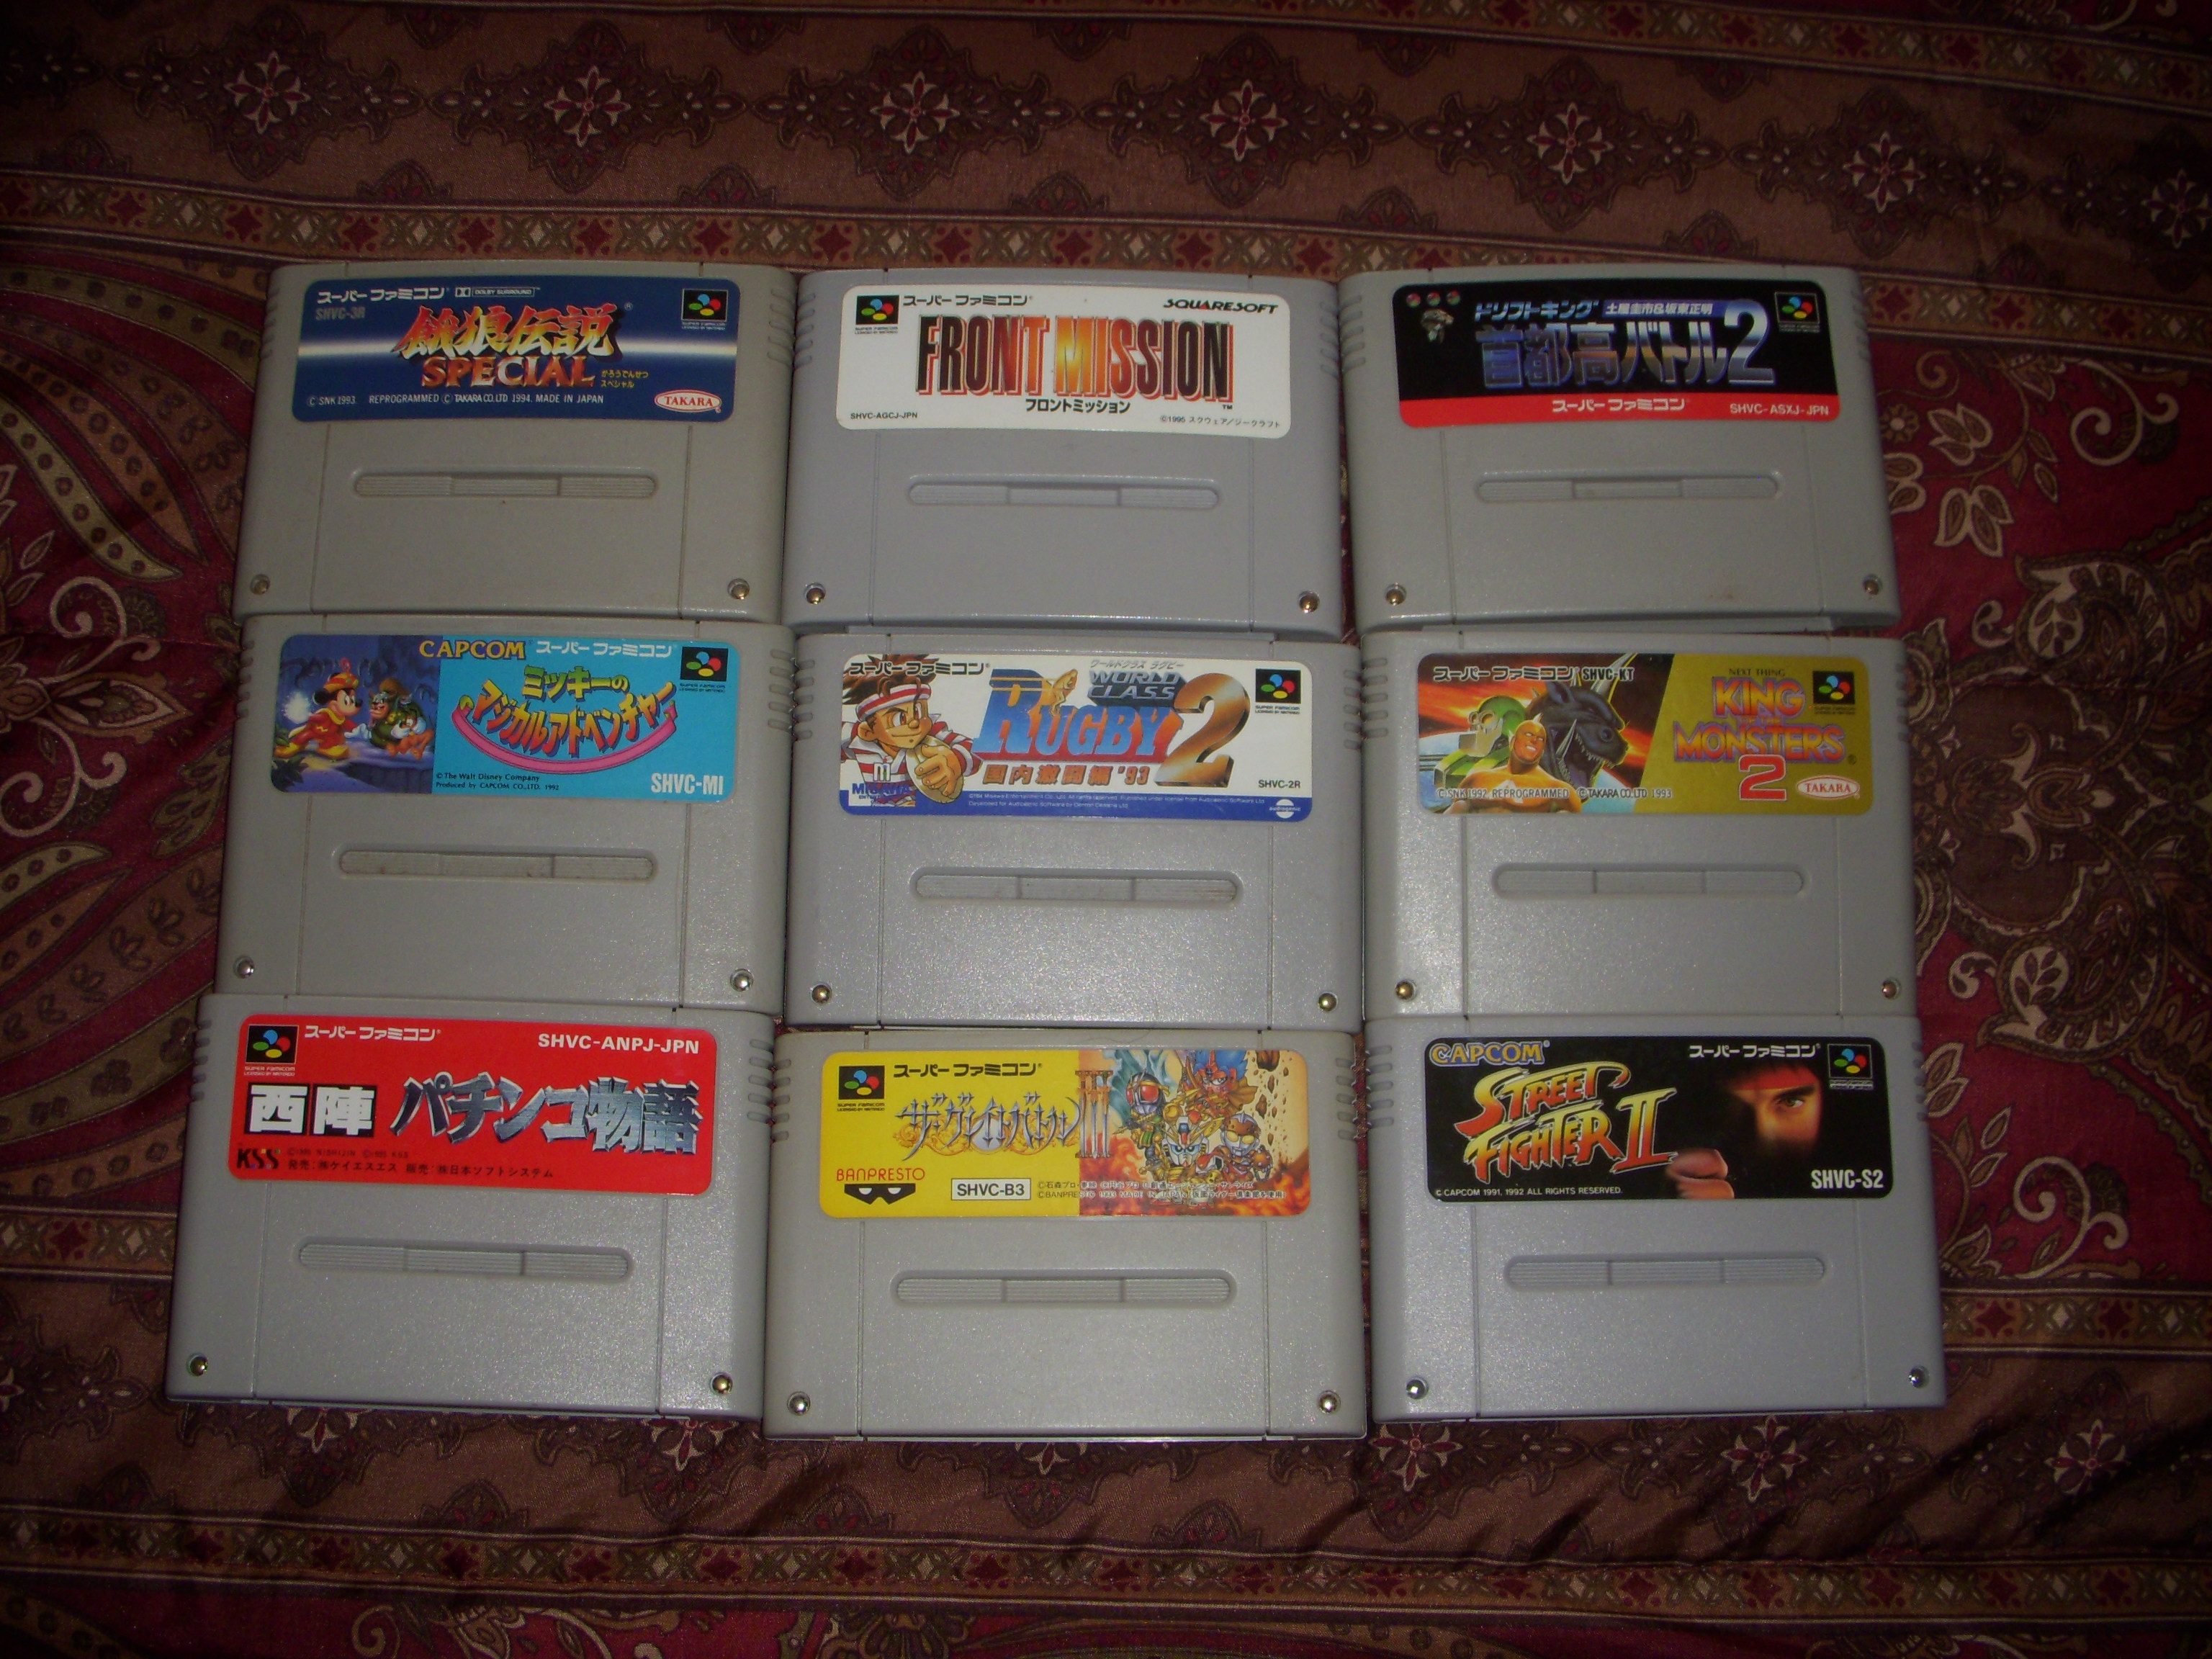 for sale japanese super famicom games5eachmany more